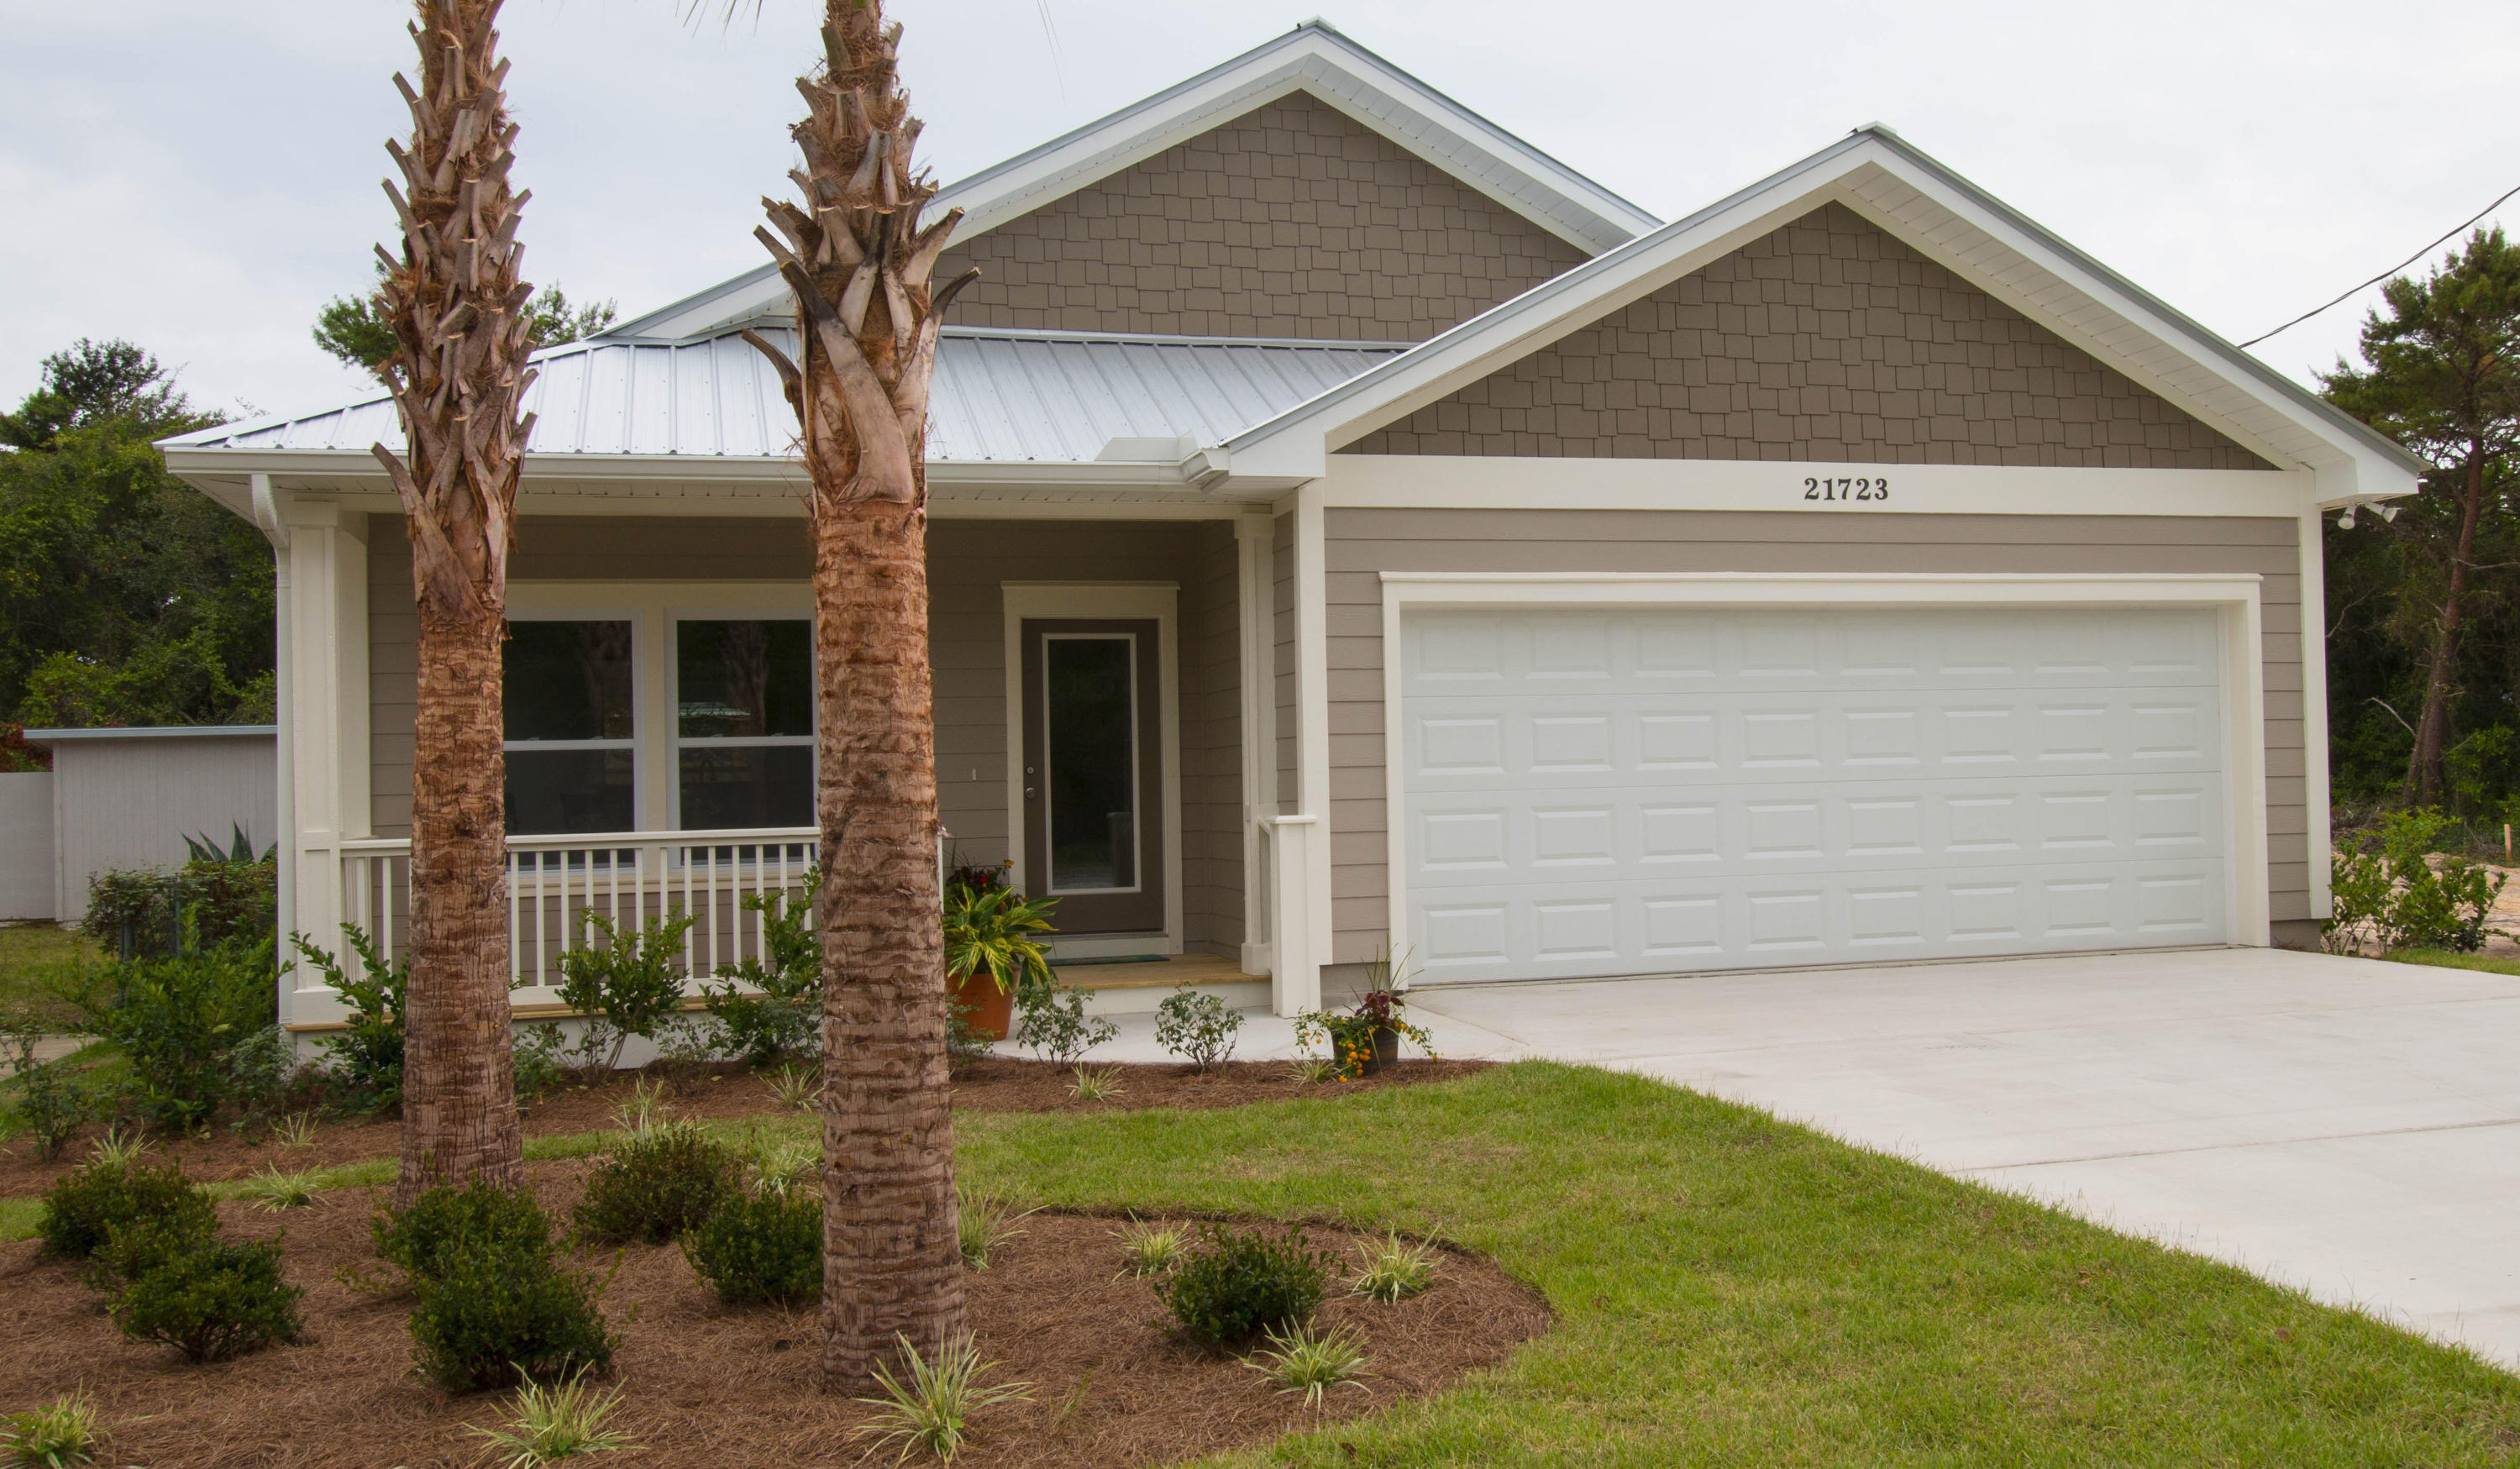 MLS Property 703724 for sale in Panama City Beach